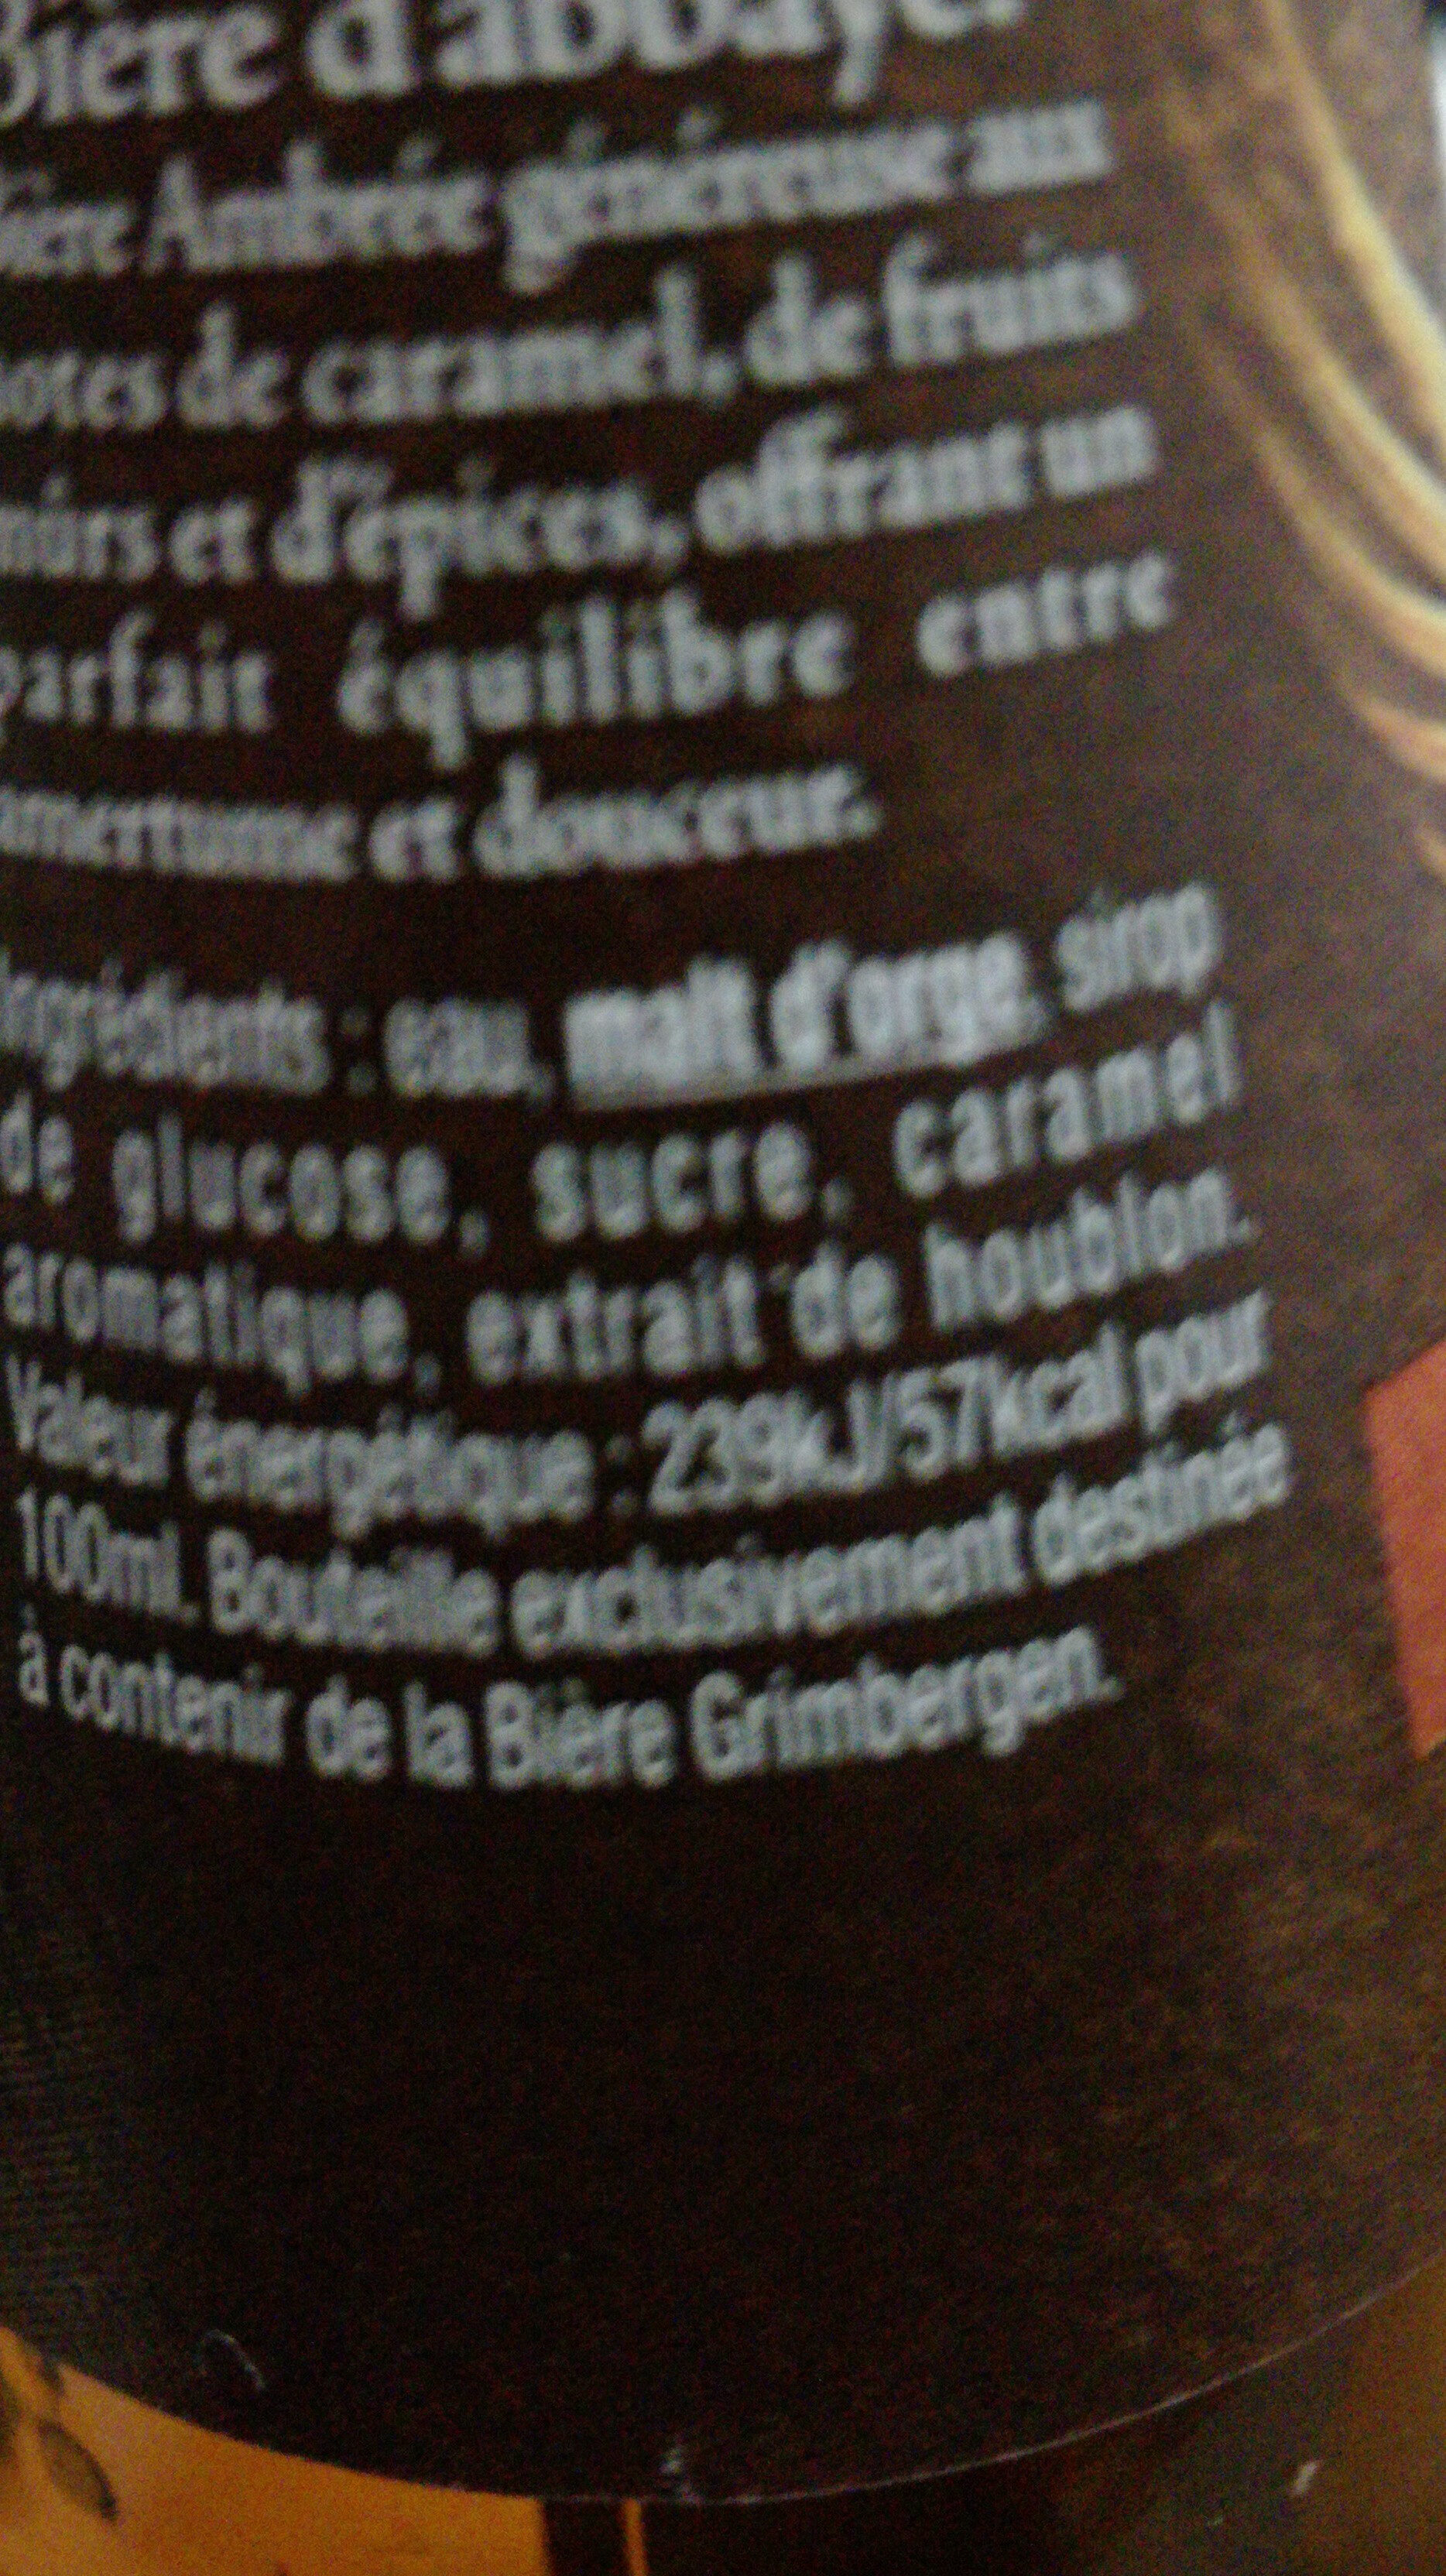 Grimbergen - 25cl grimbergen ambree - 6.50 degre alcool - Ingredients - fr